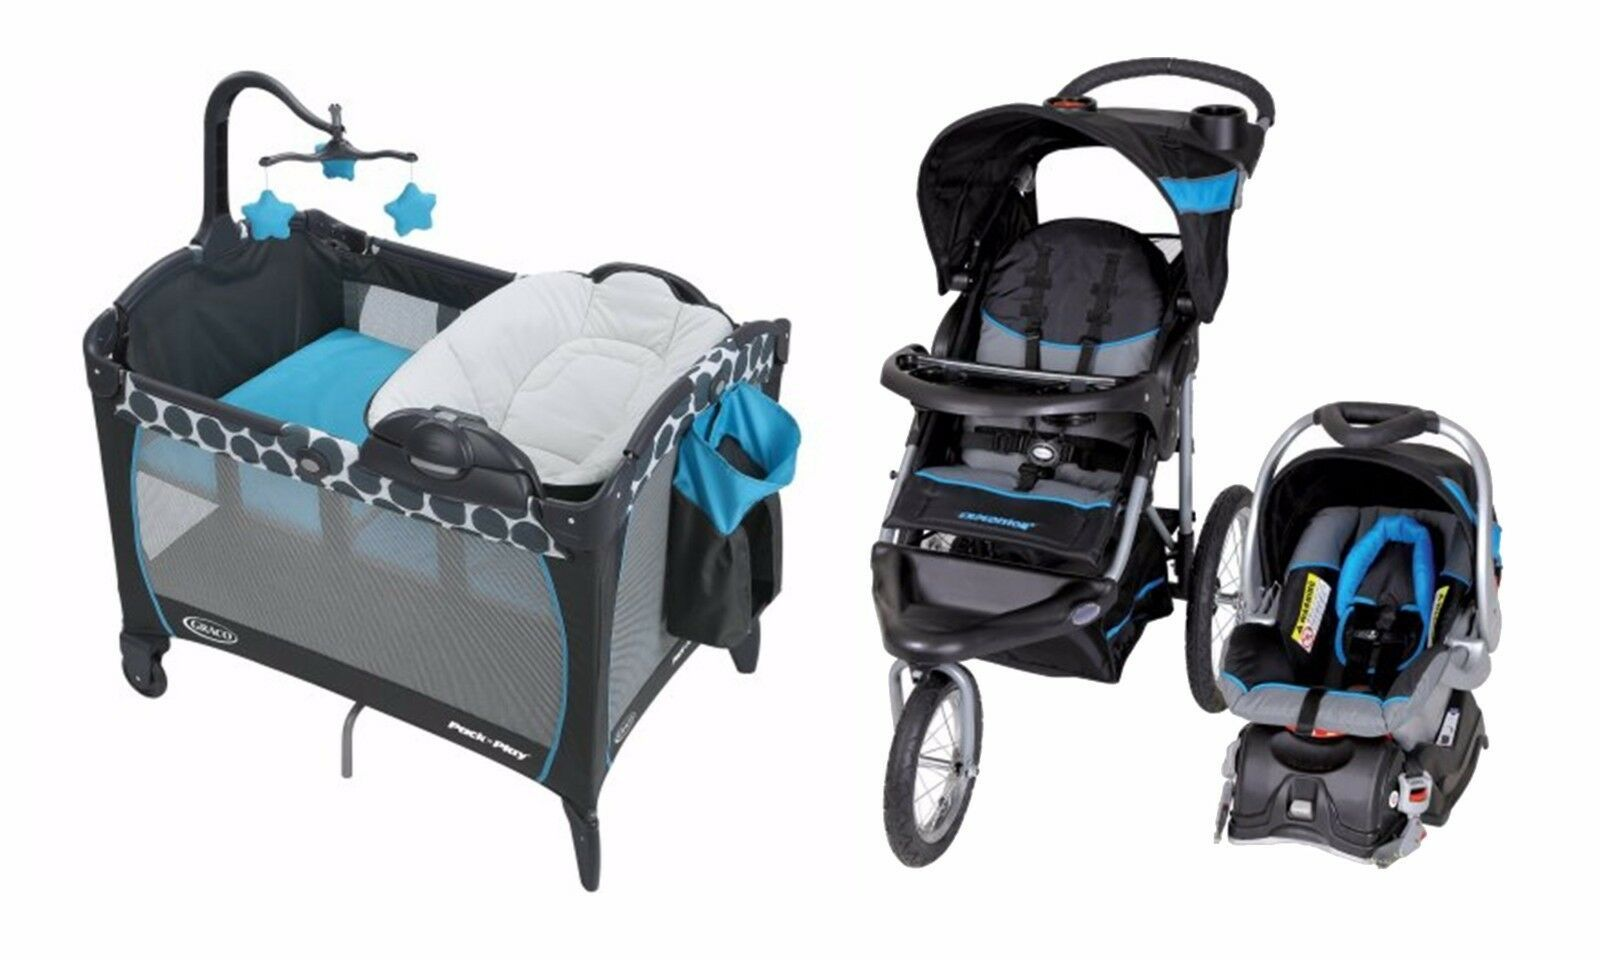 48++ Car seat and stroller set ideas in 2021